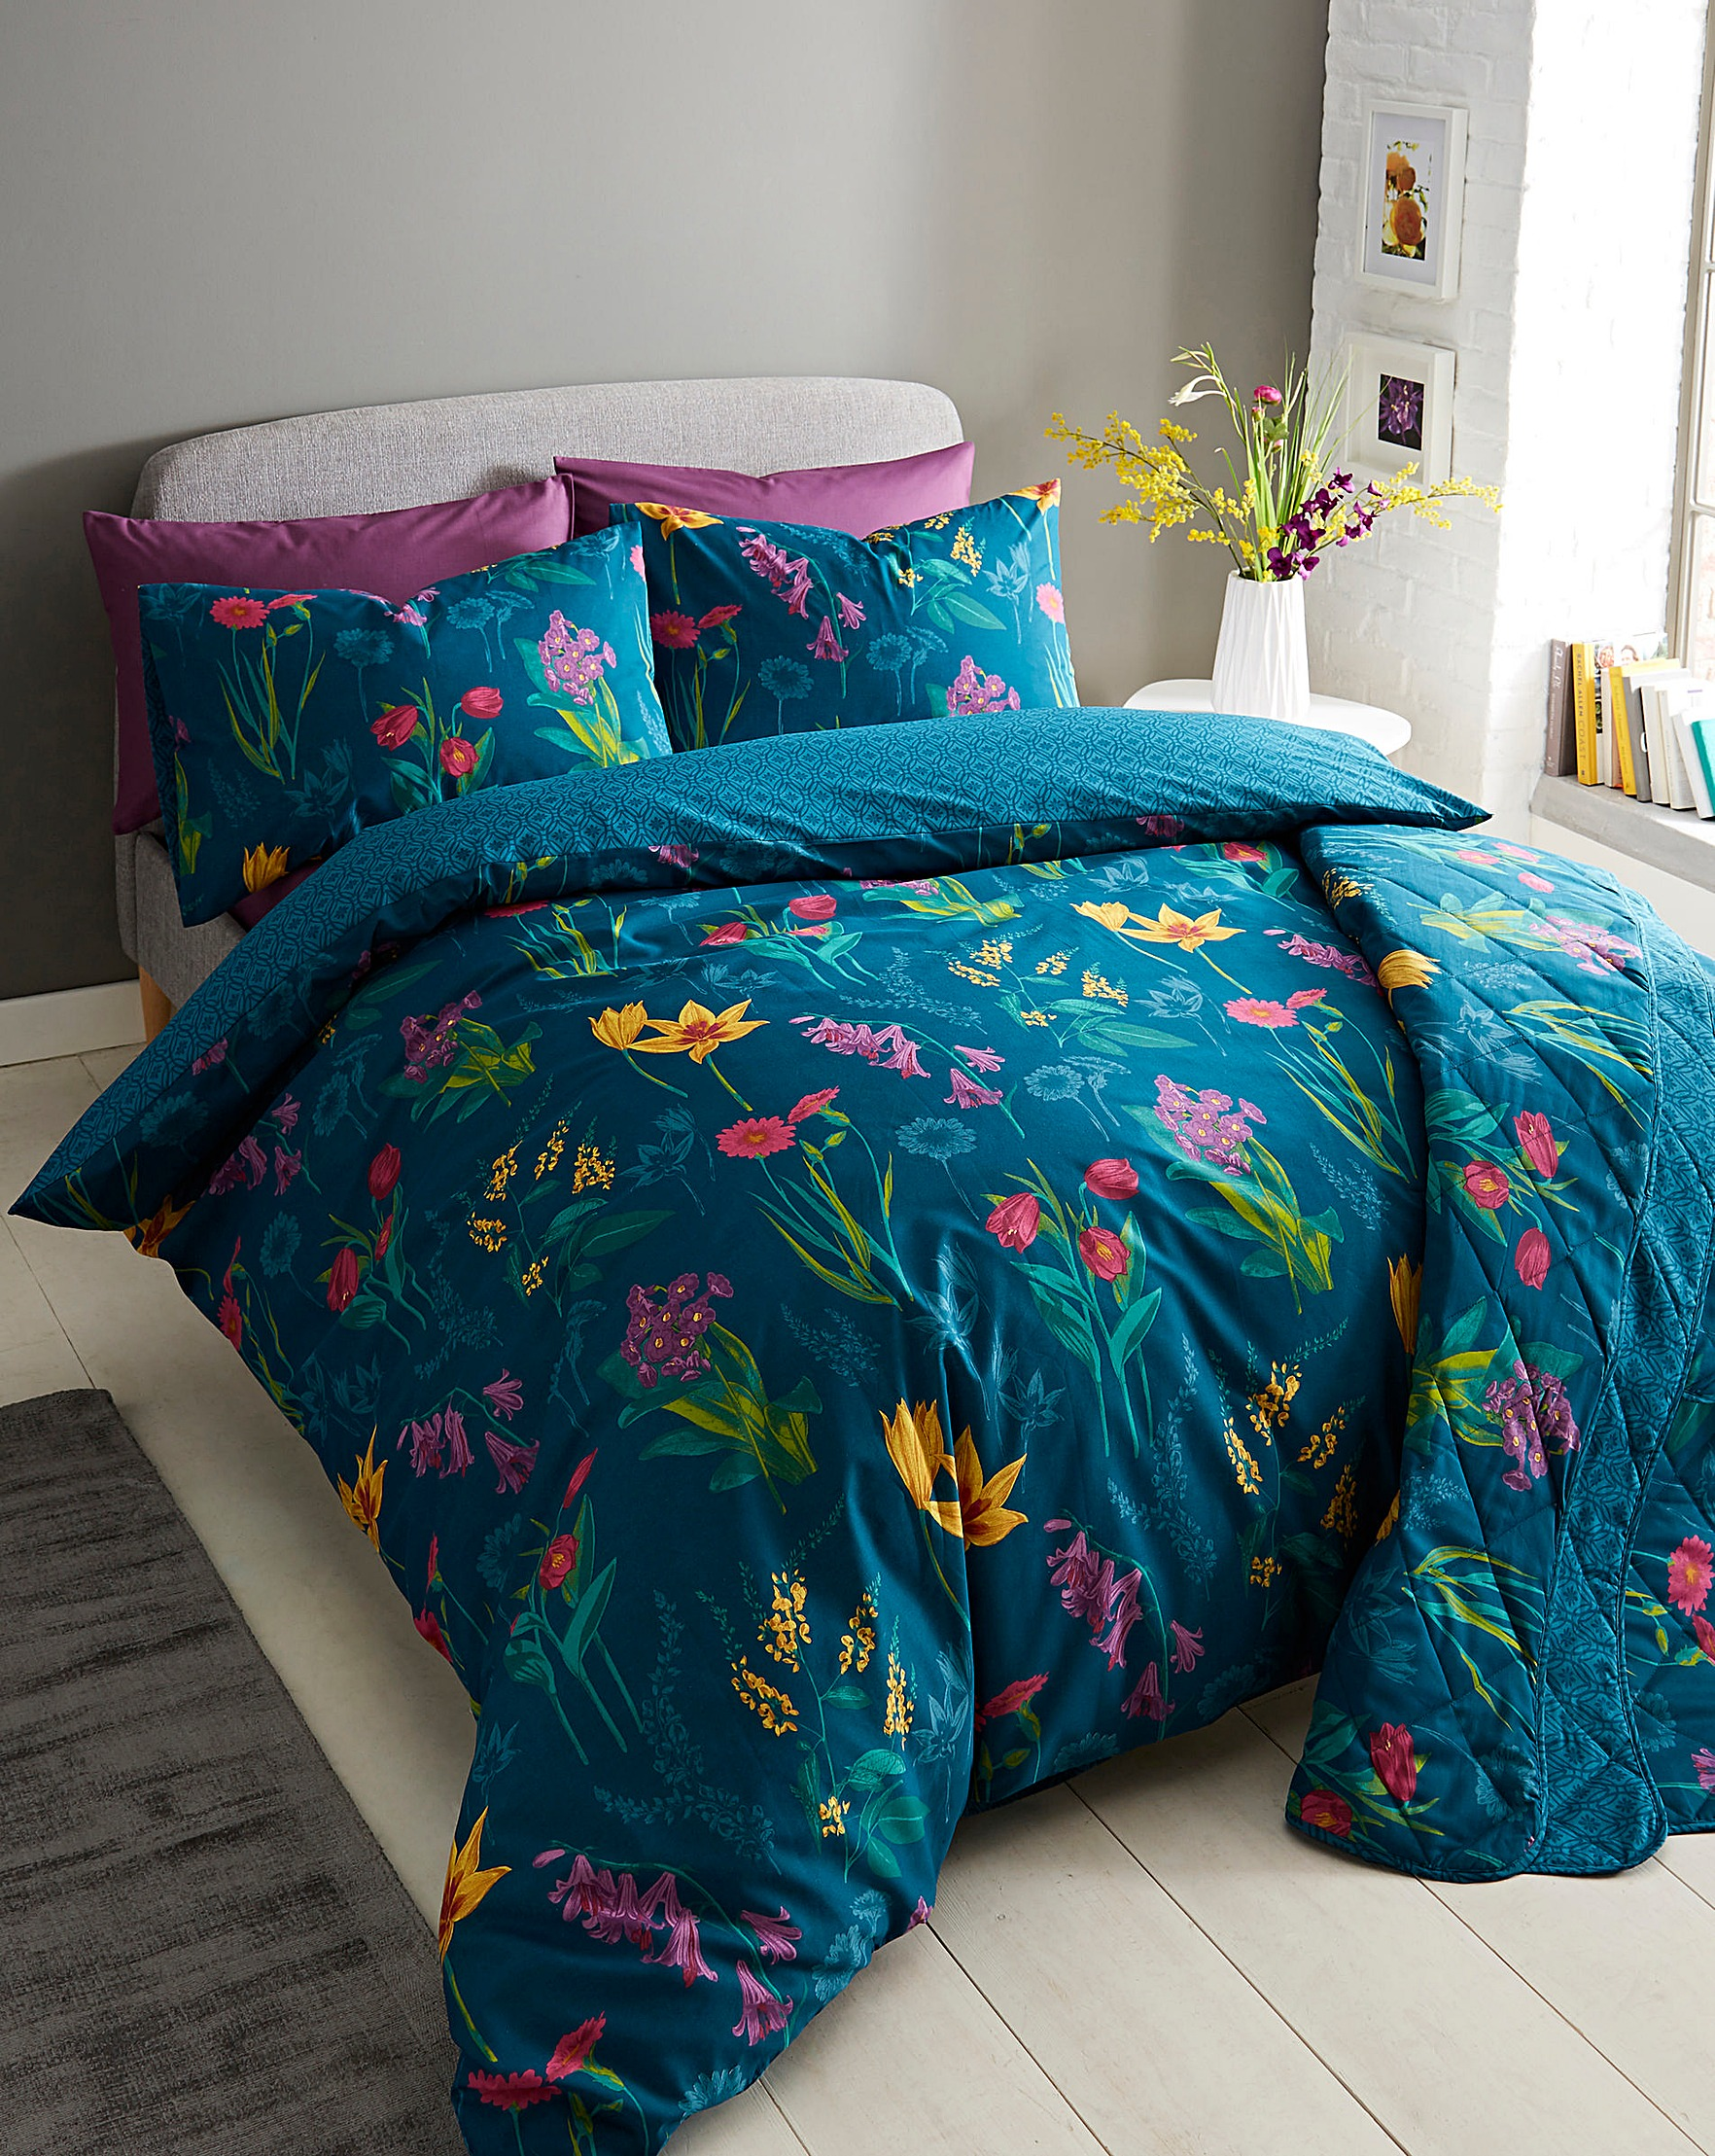 double covers cover set teal duvet bed green